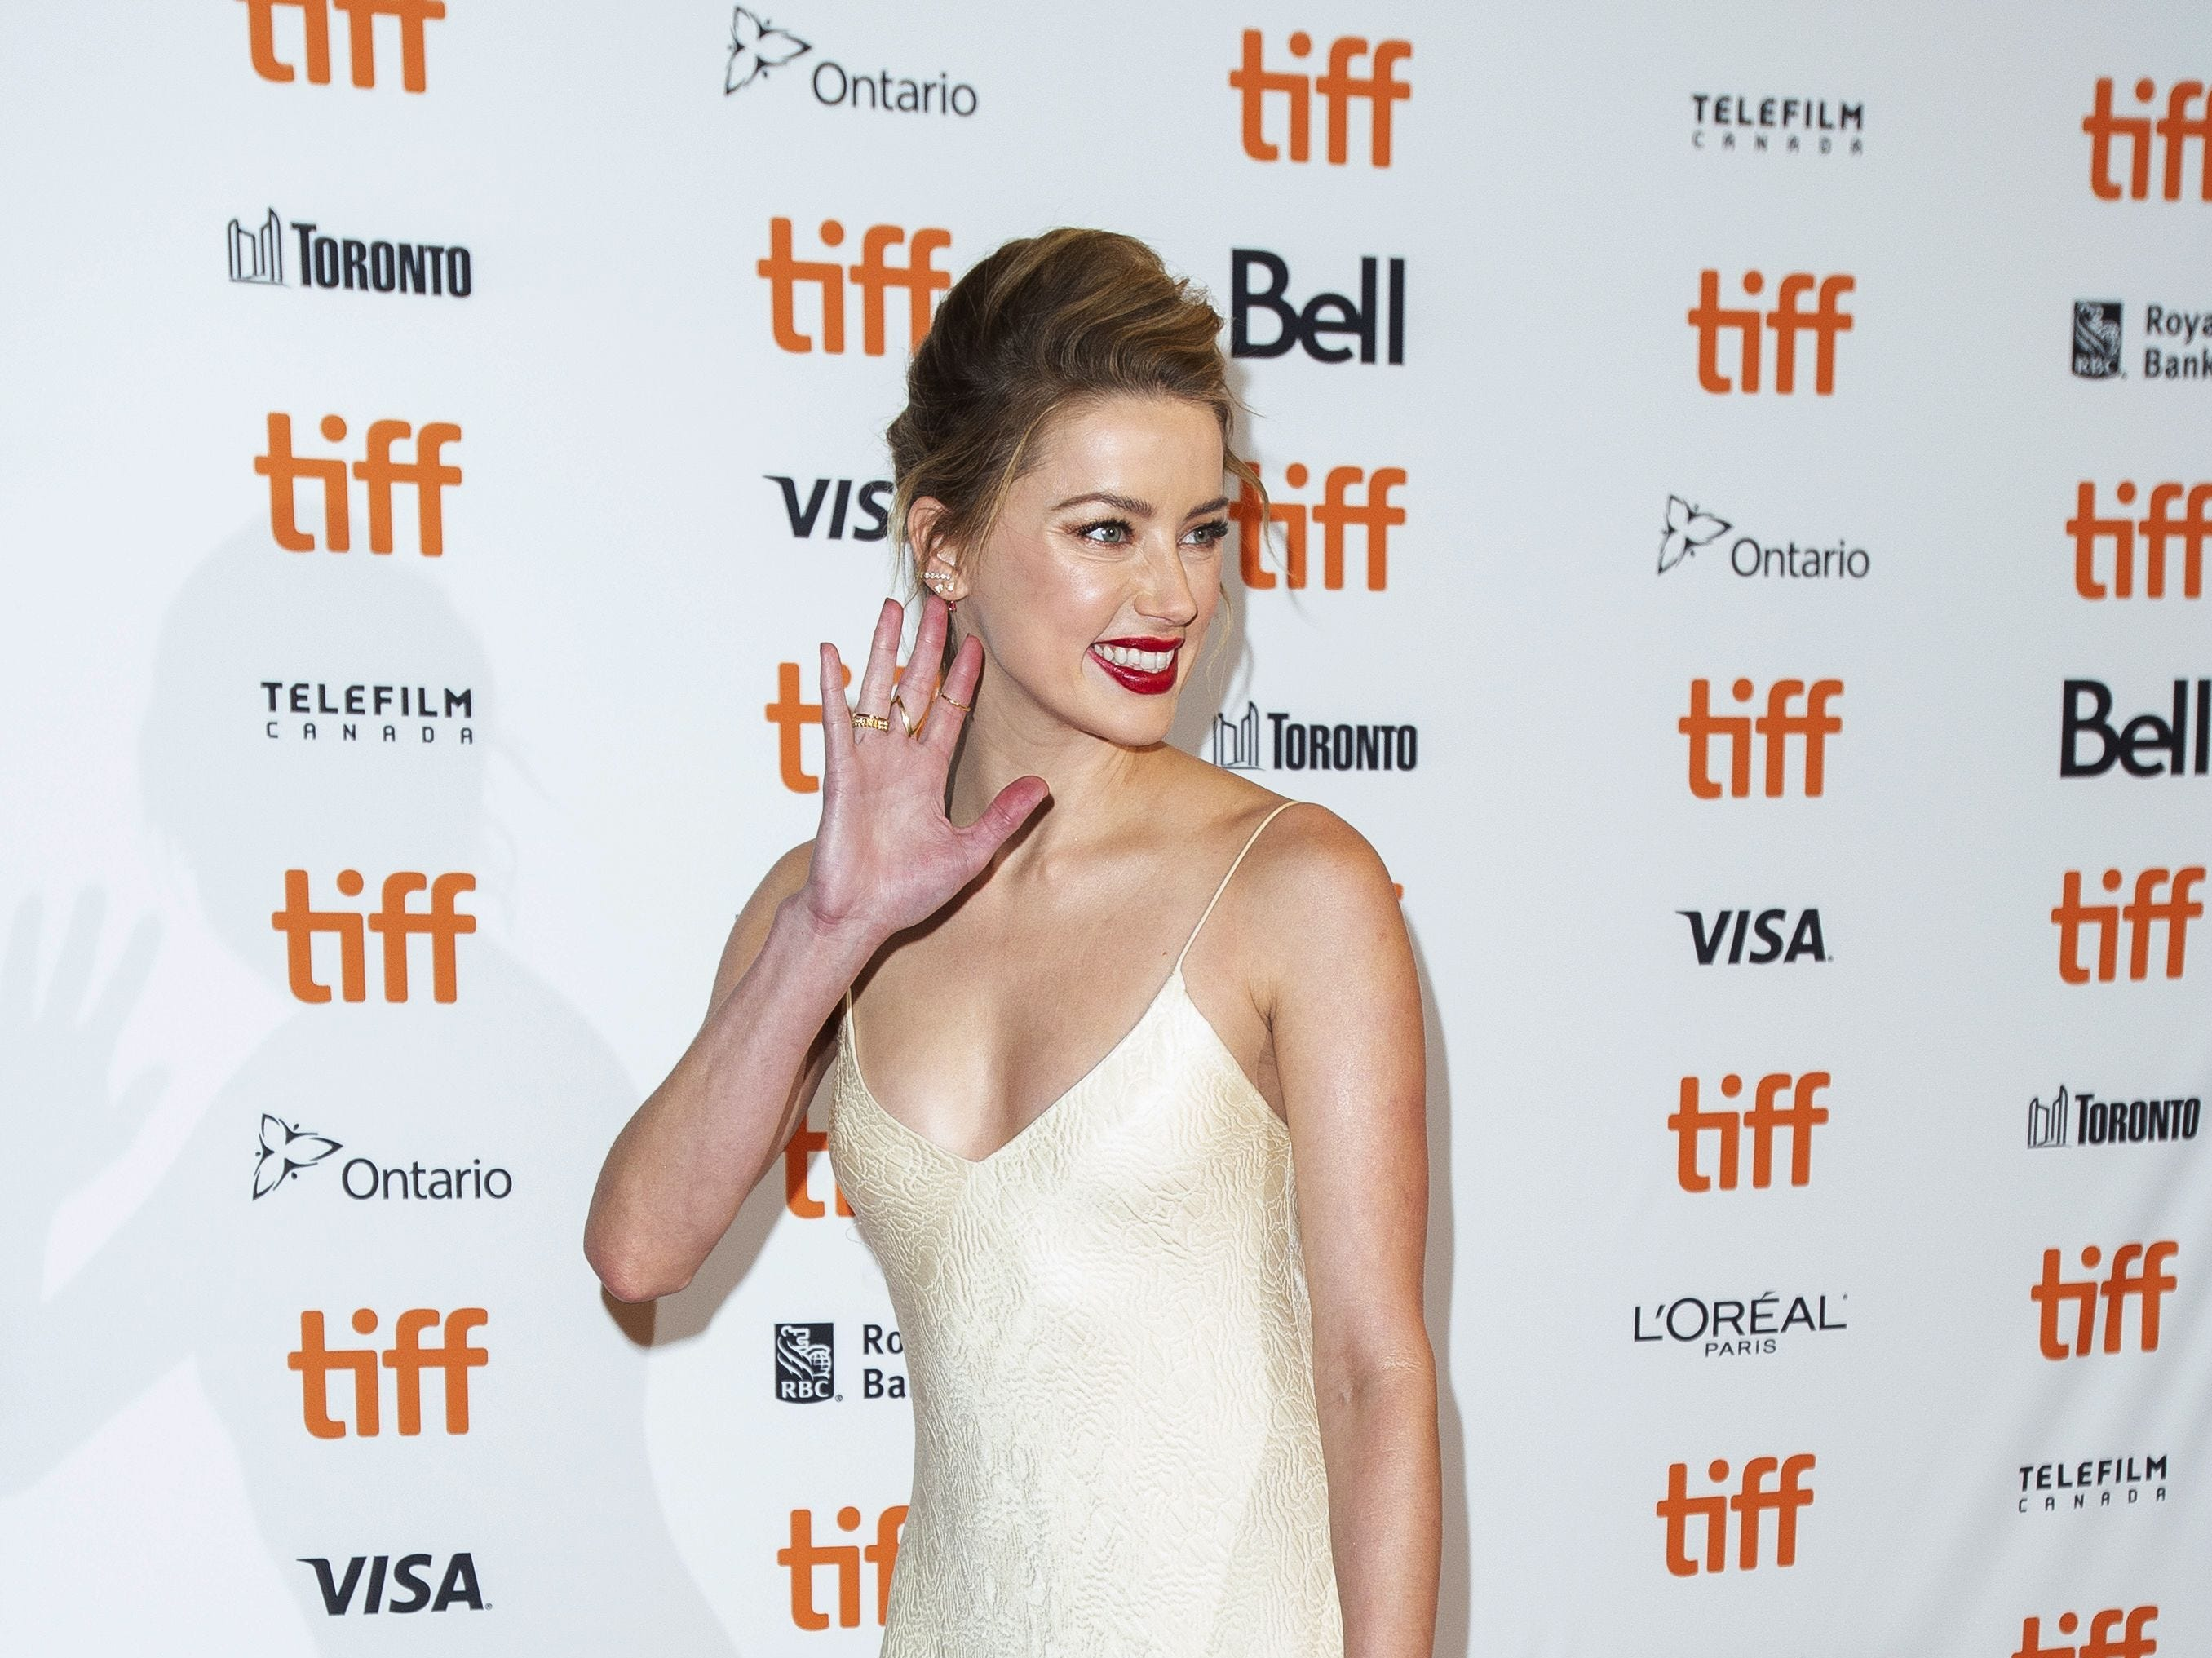 Amber Heard attends the premiere of 'Her Smell' at the Toronto International Film Festival in Toronto, Ontario, September 9, 2018. (Photo by Geoff Robins / AFP)GEOFF ROBINS/AFP/Getty Images ORG XMIT: Toronto i ORIG FILE ID: AFP_18Z3YC